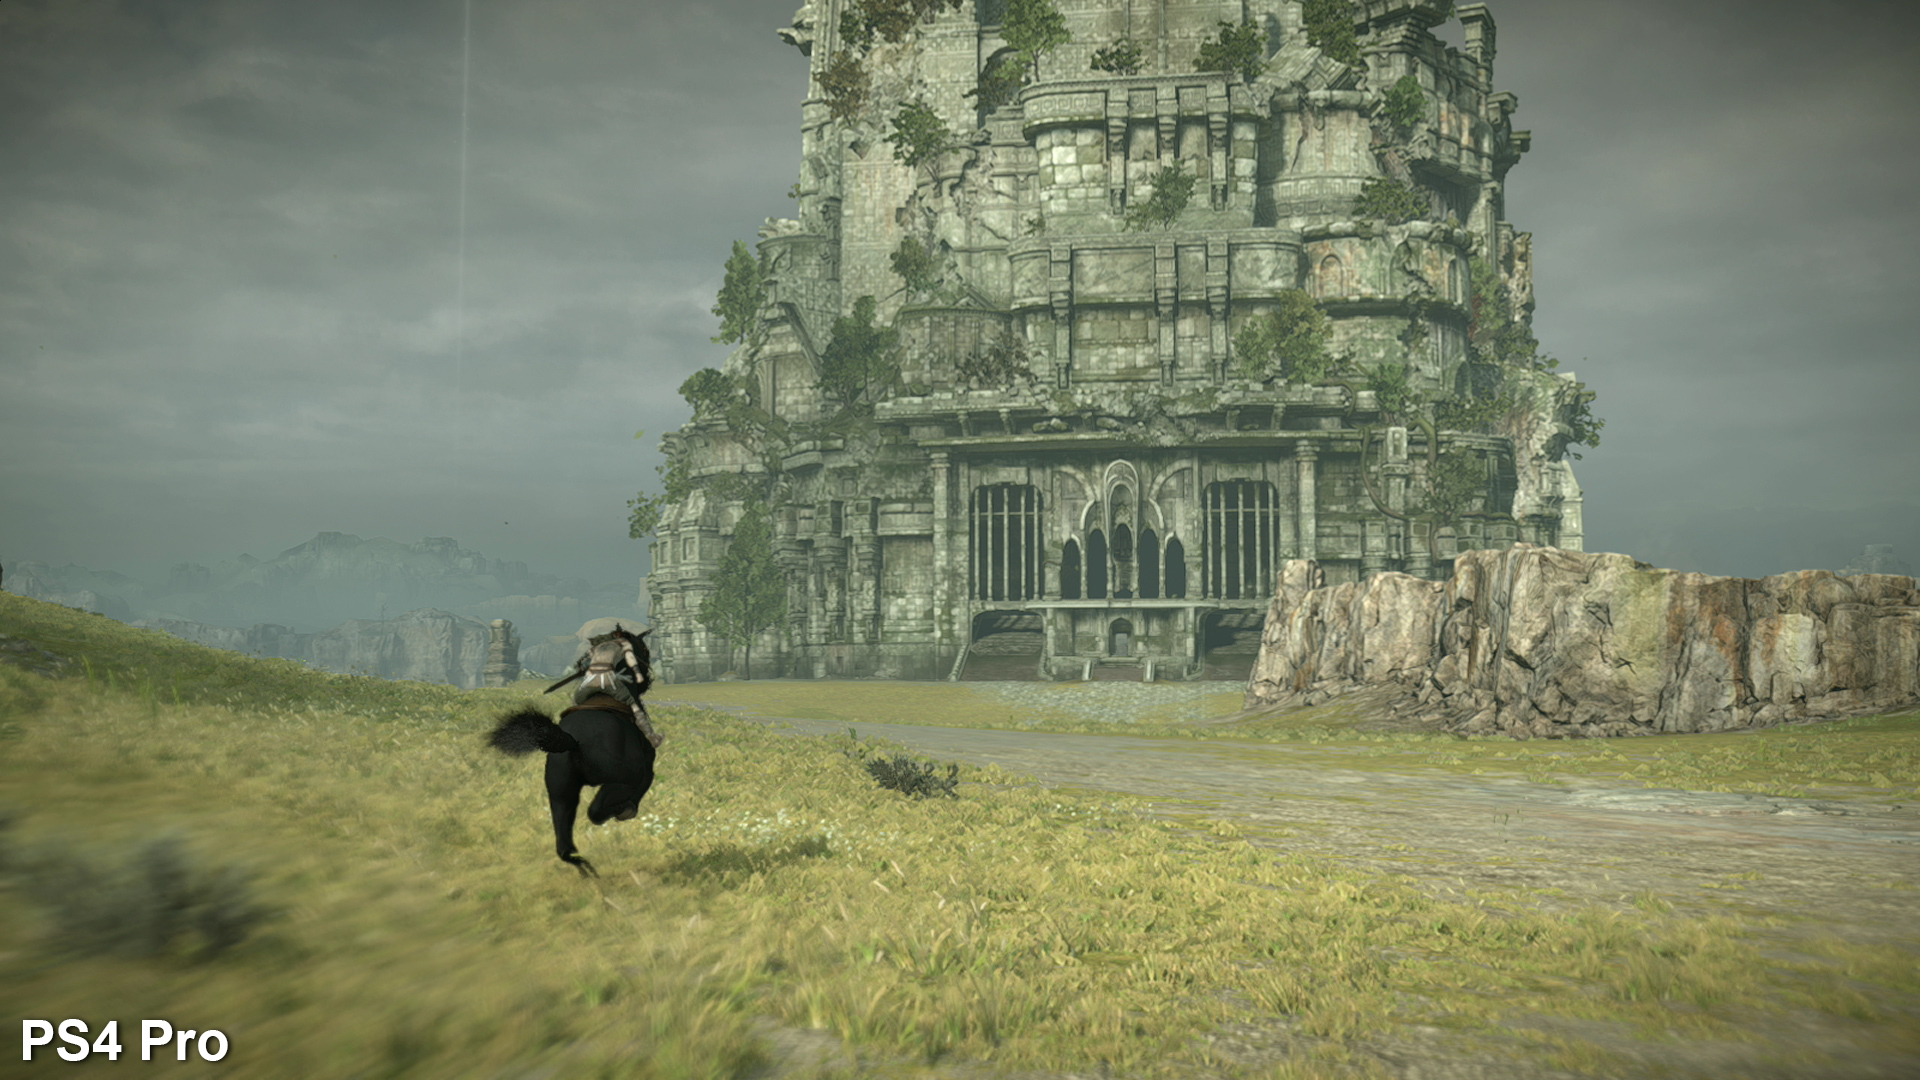 The making of Shadow of the Colossus on PS4 • Eurogamer net